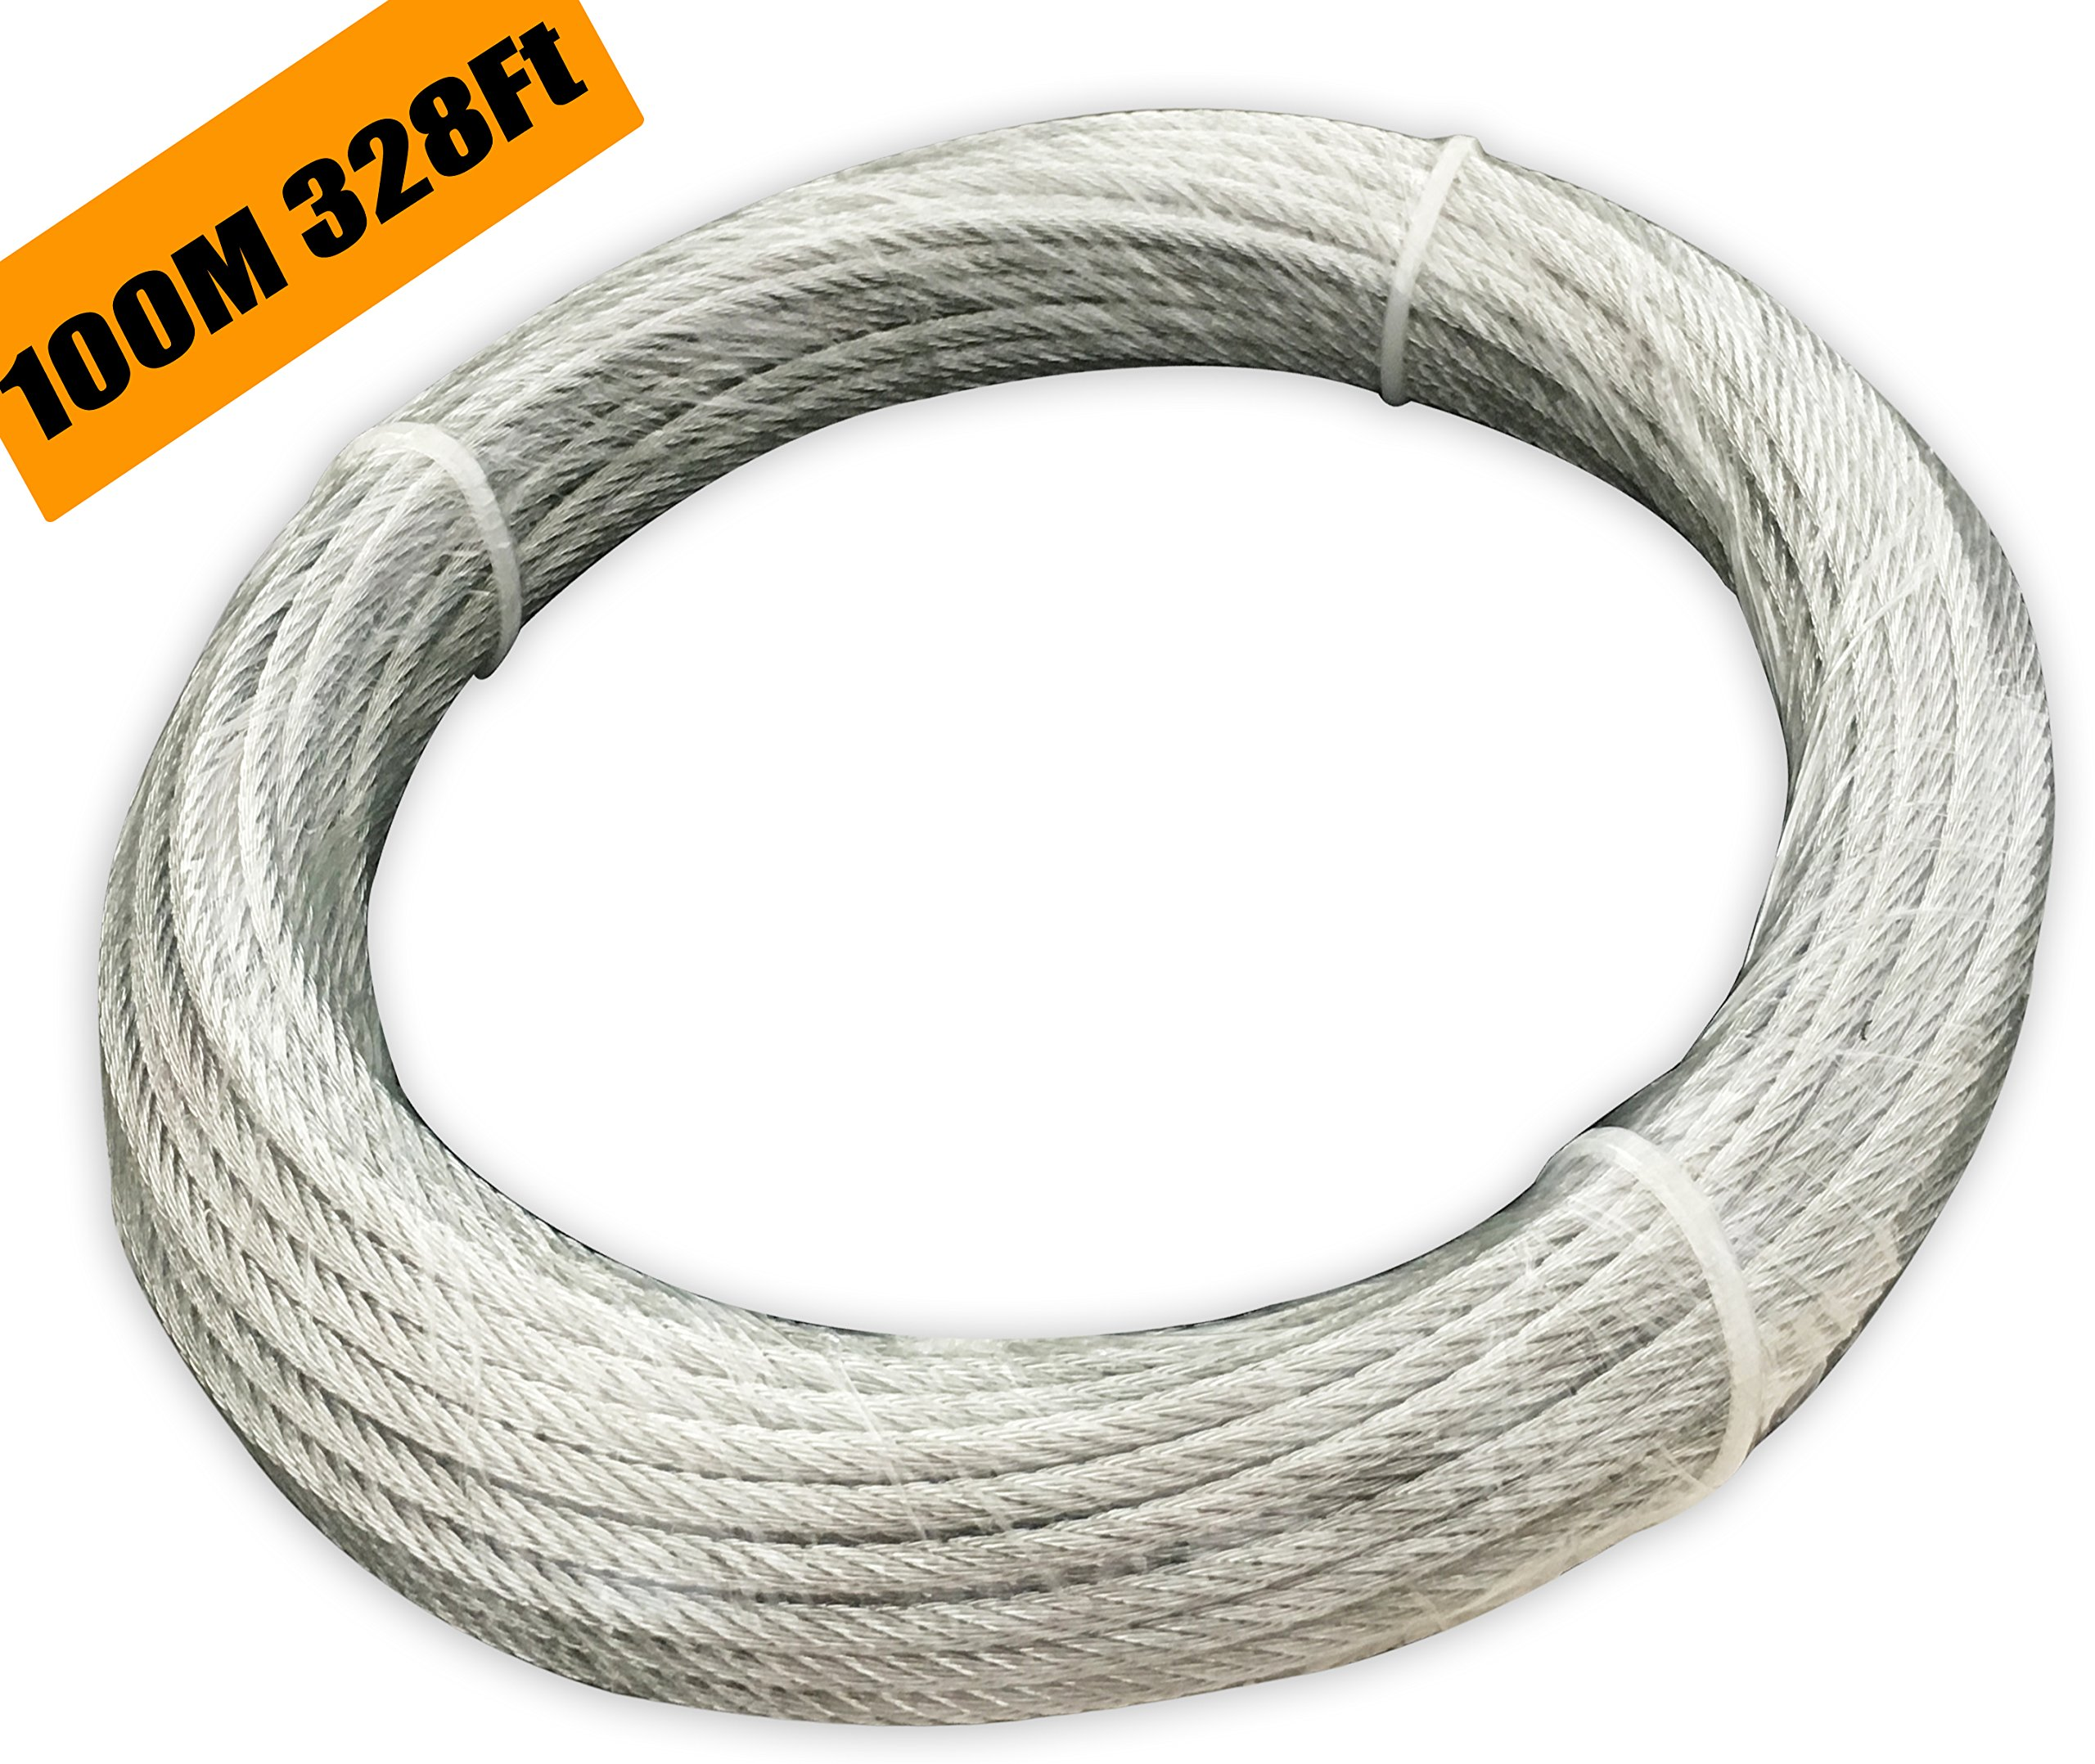 Muzata Galvanized Wire Rope Aircraft Cable for Railing,Decking, DIY Balustrade, 1/8Inch,7x7,330Feet